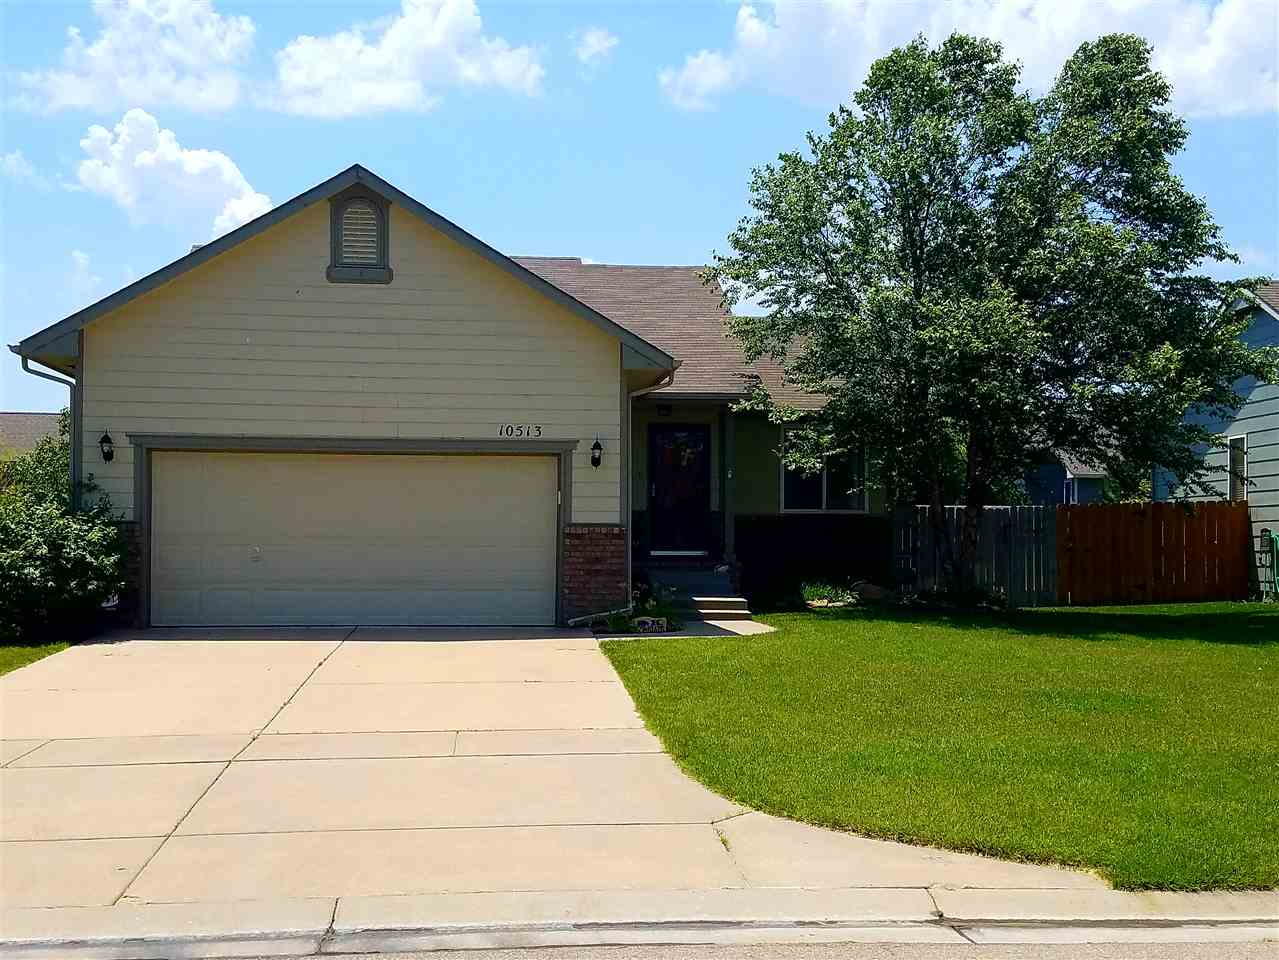 10513 W LAMP CIR, Wichita, KS 67215